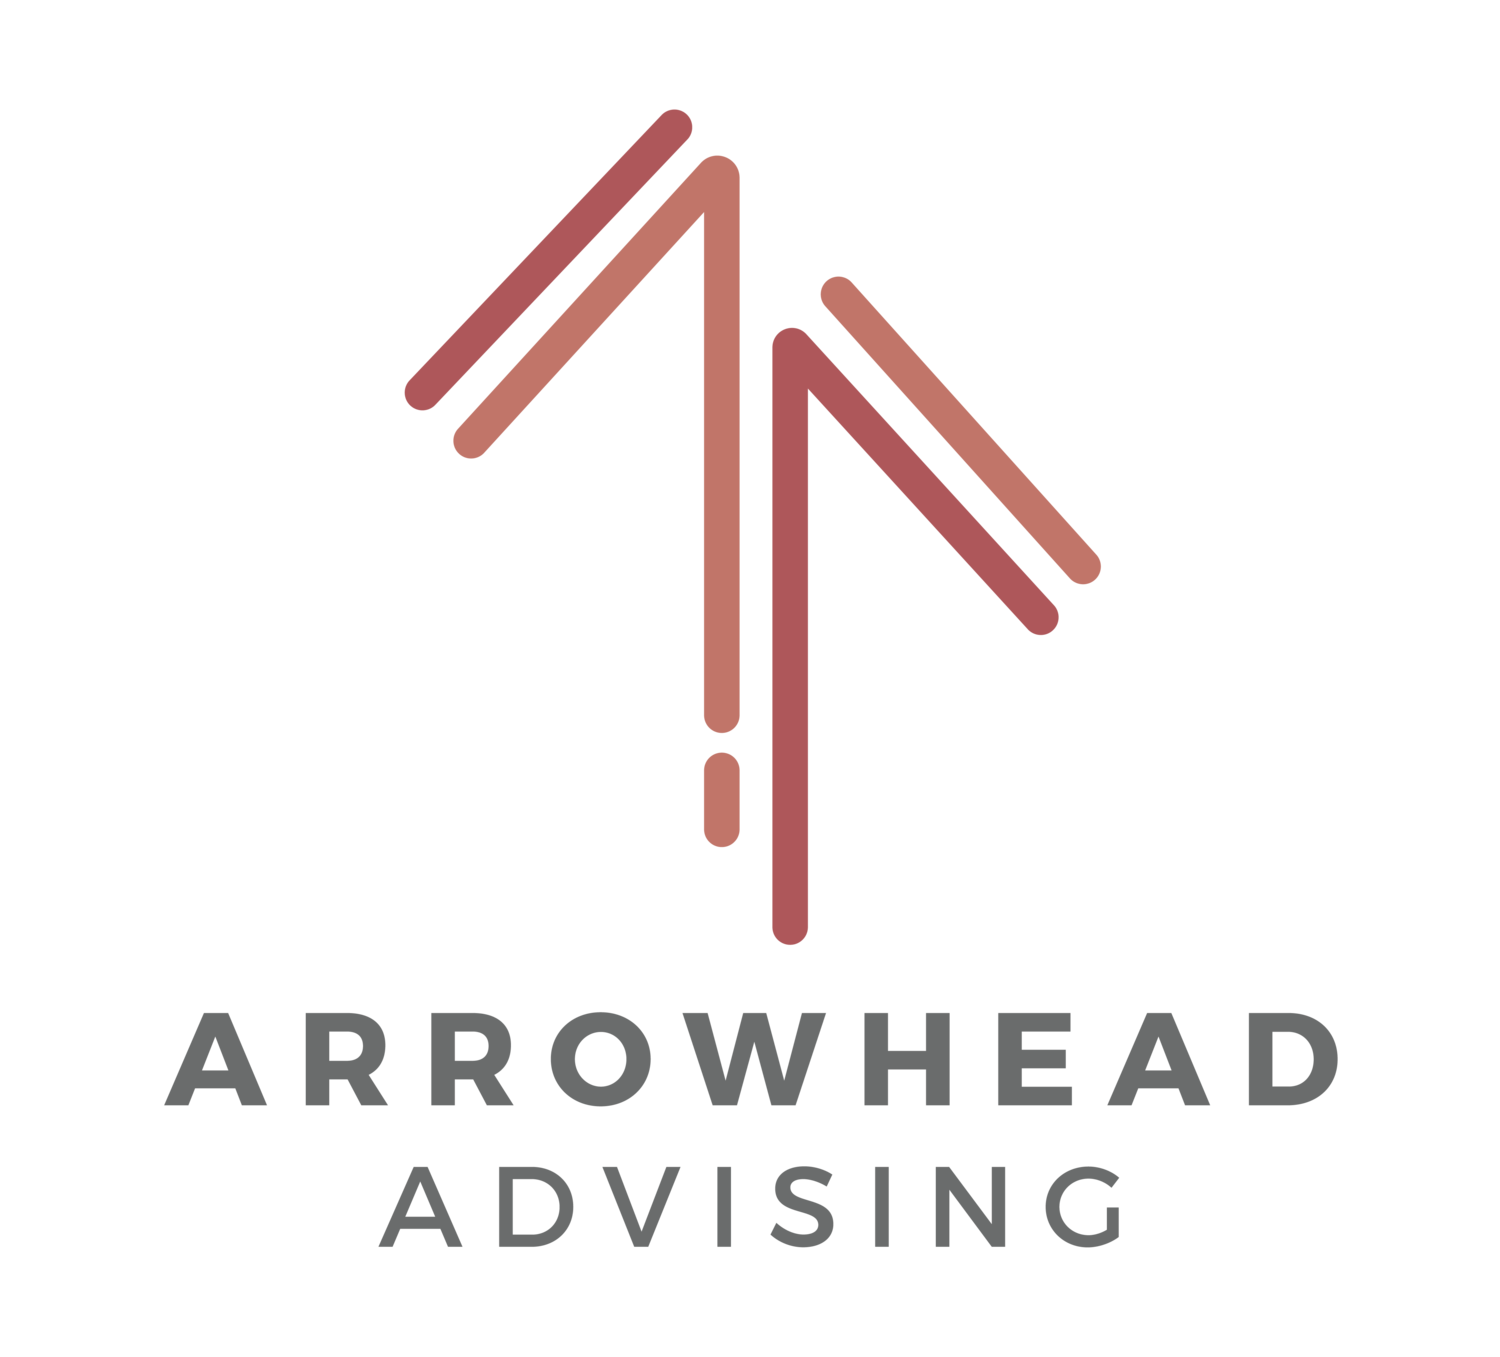 Arrowhead Advising